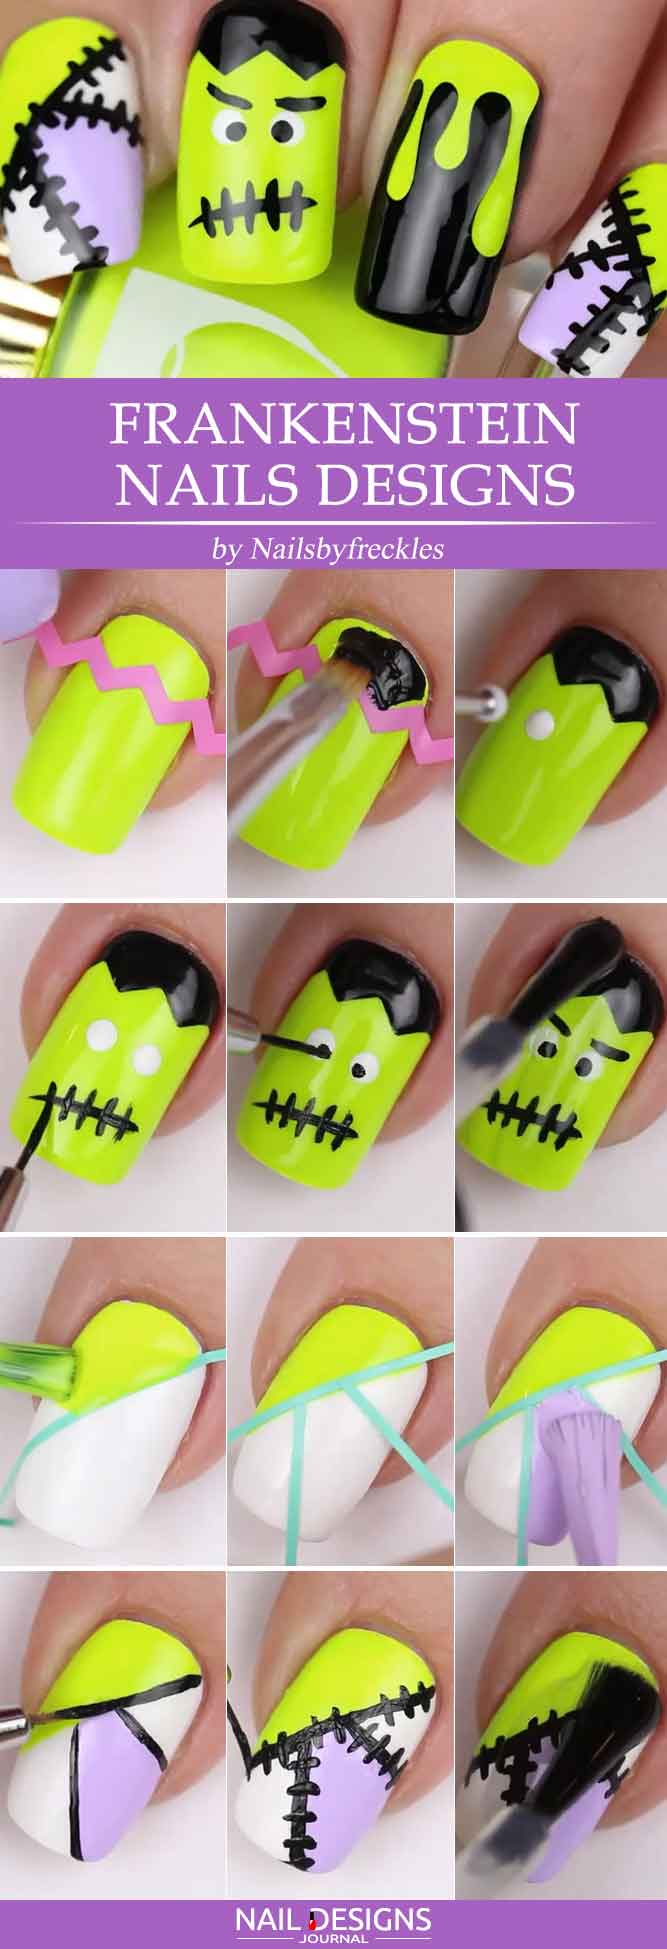 Frankenstein Nails Designs